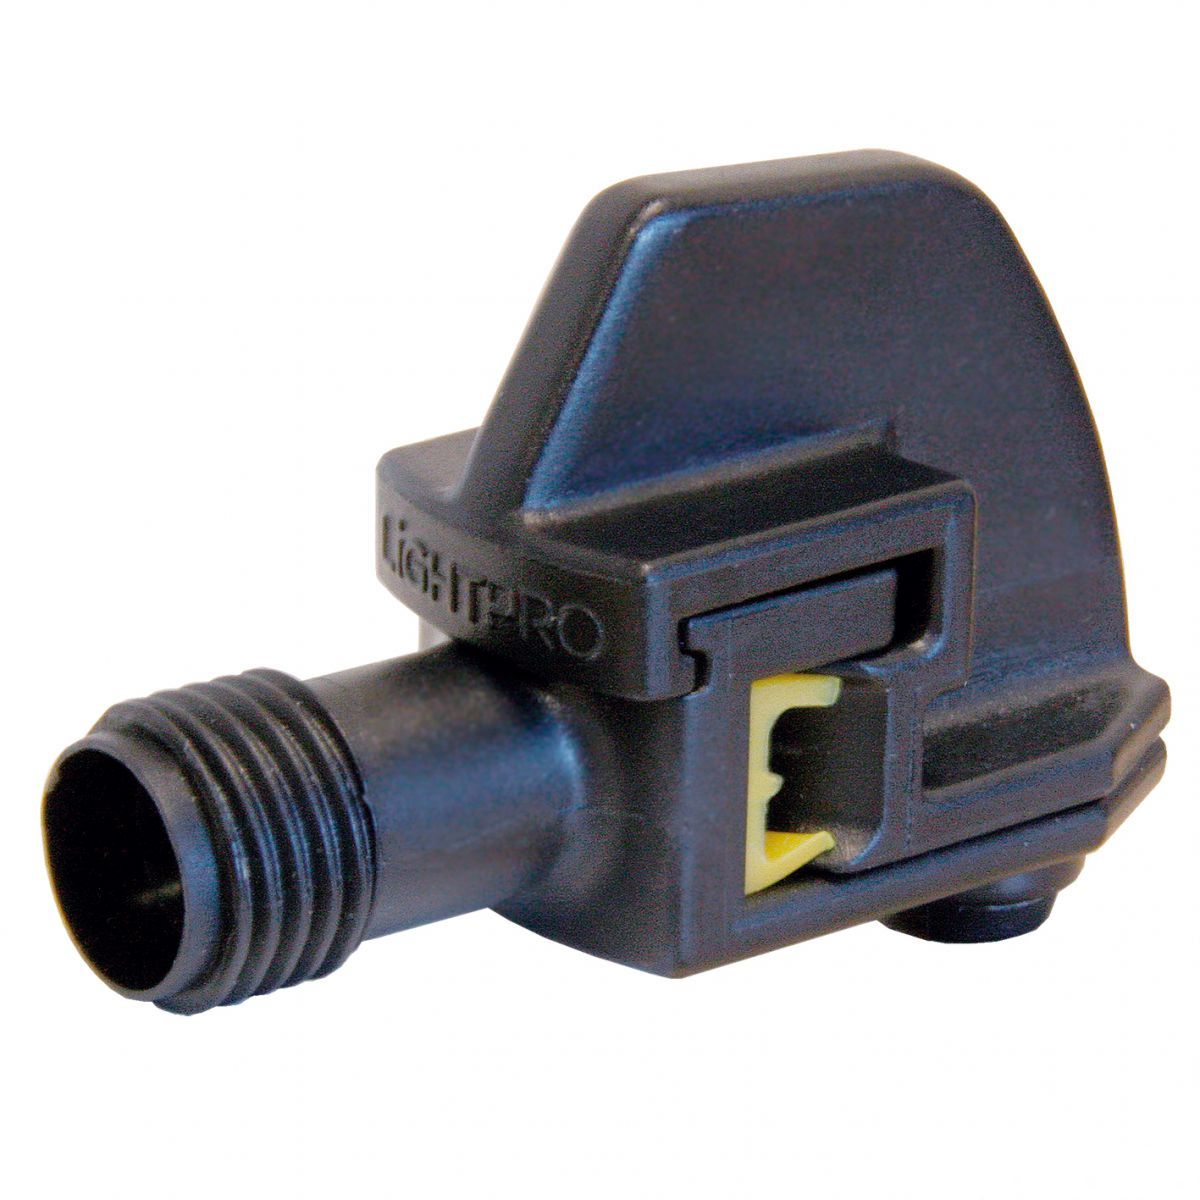 Lightpro 12 volt Connector Type-F